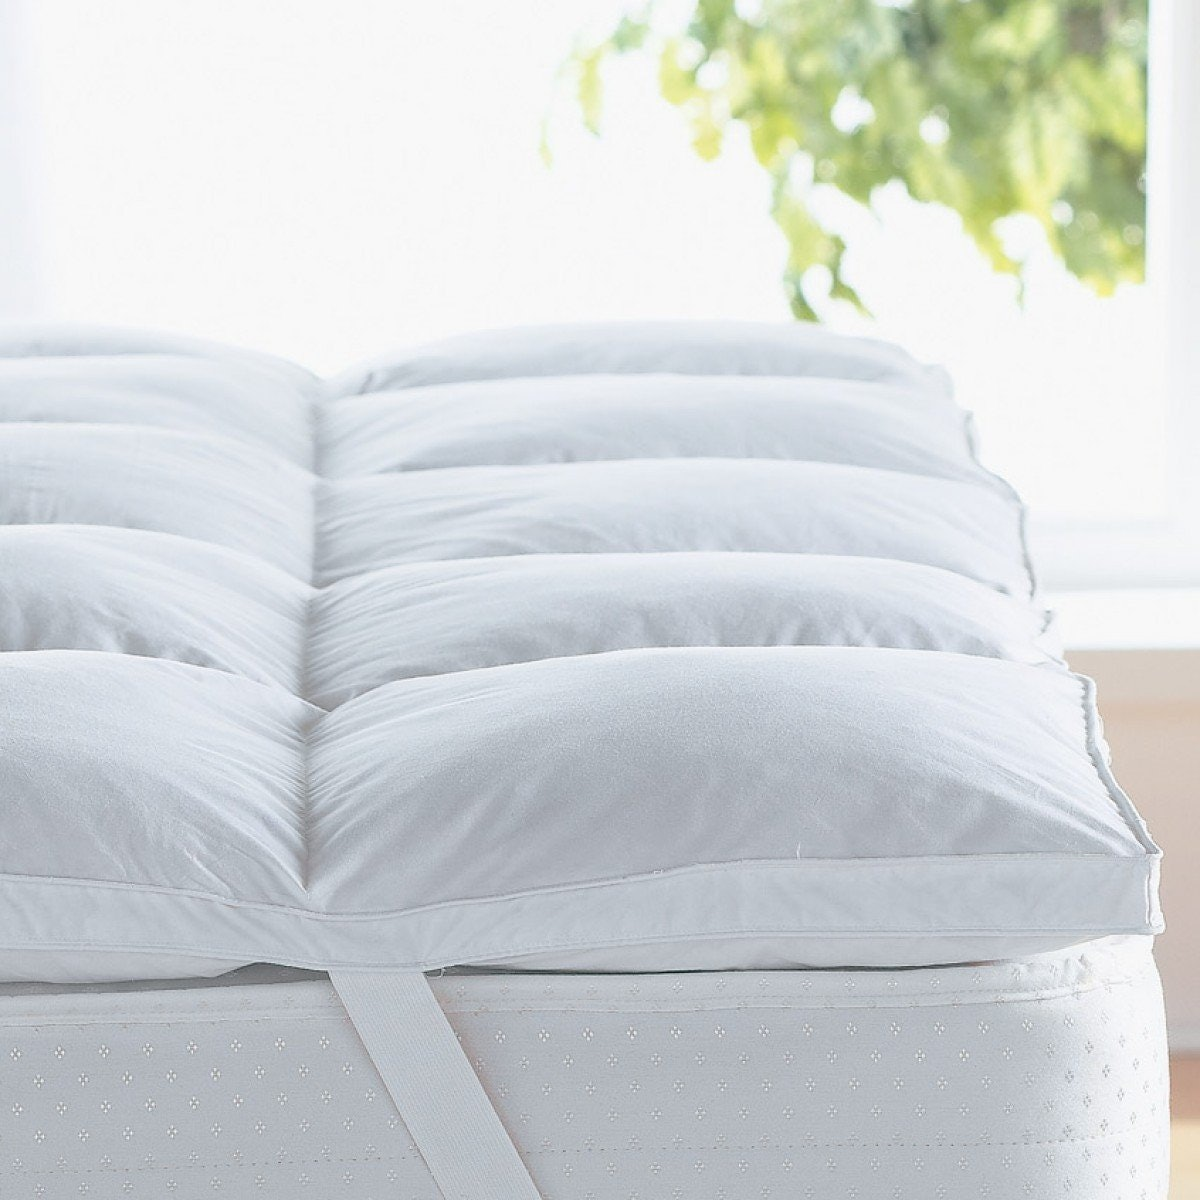 3a plush down alternative mattress topper